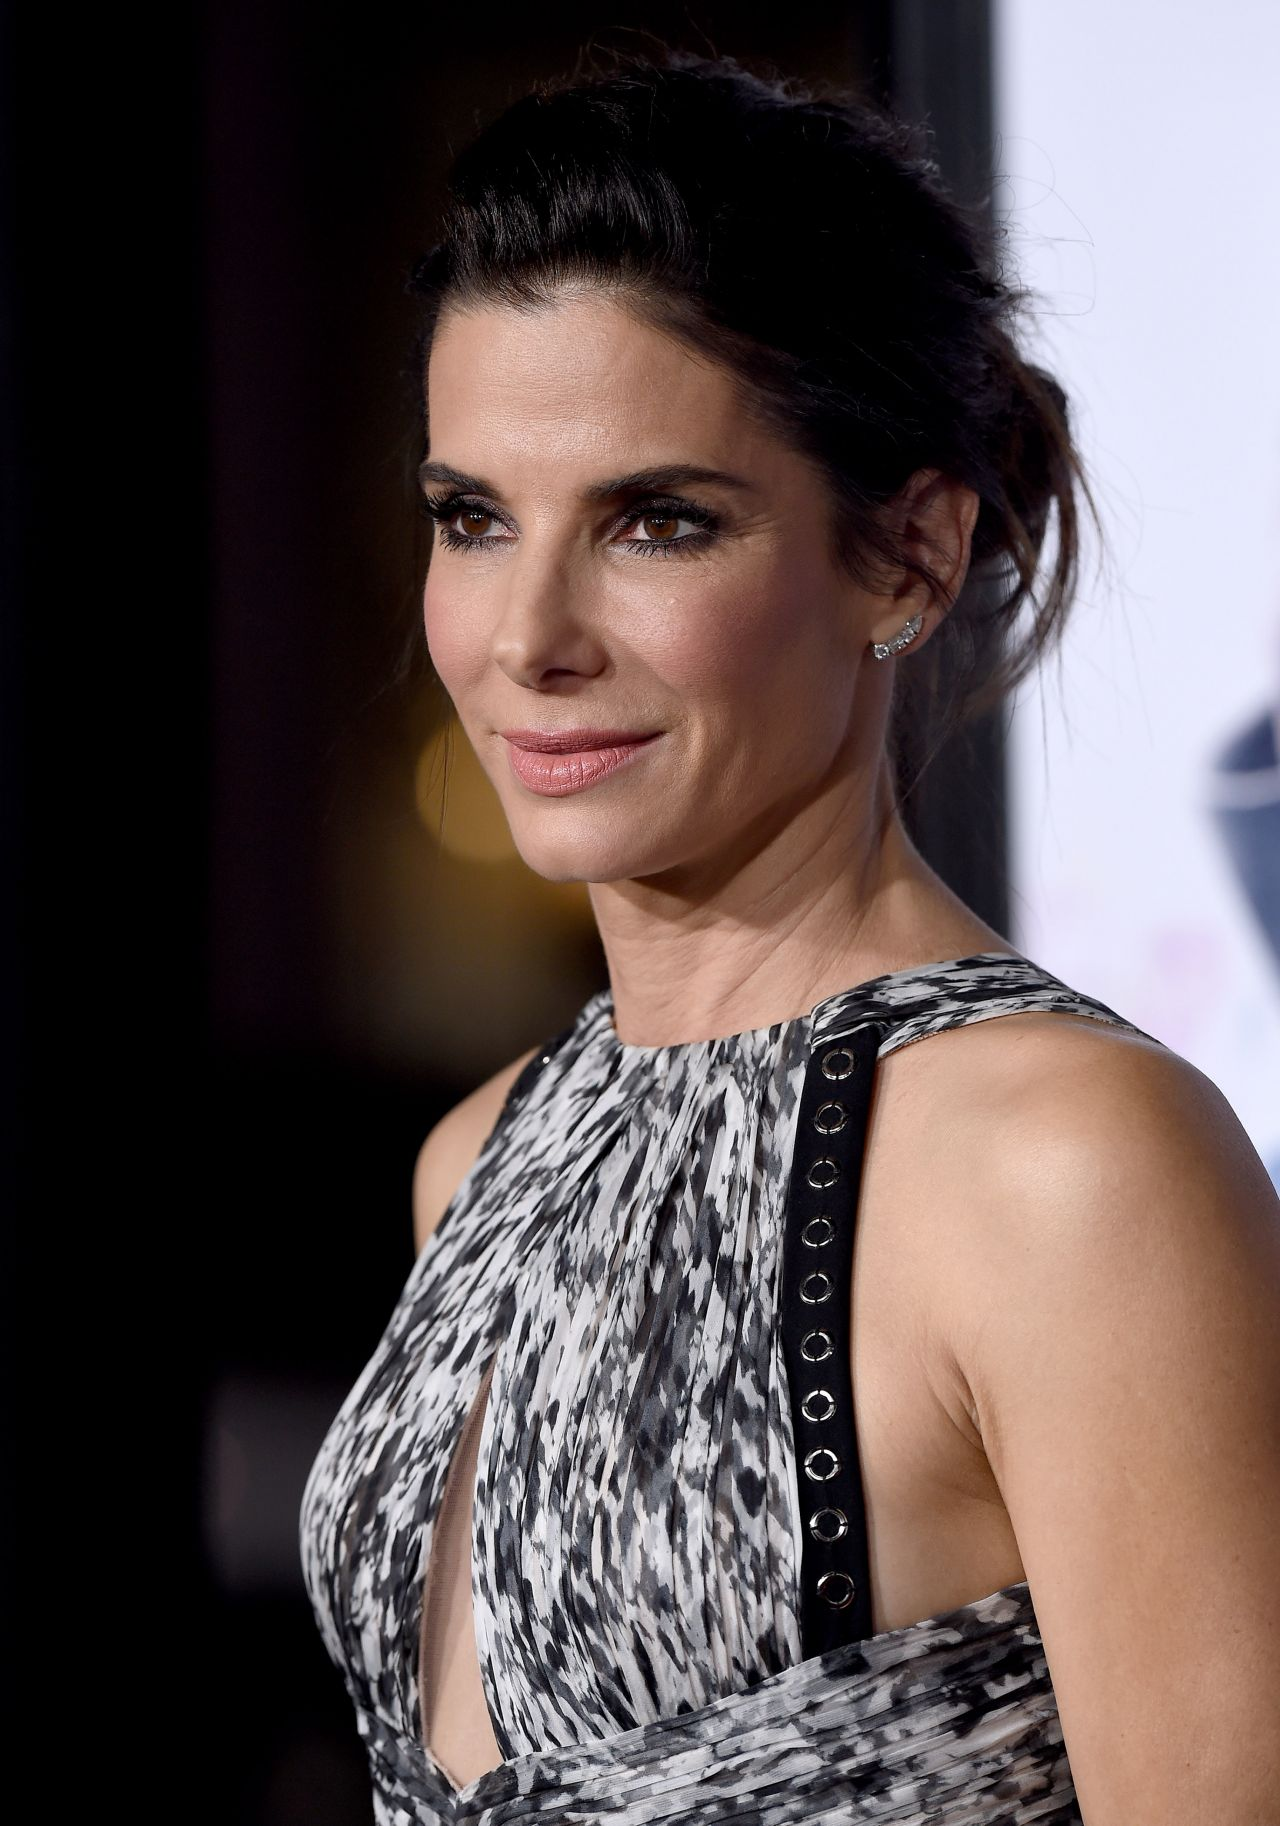 Sandra Bullock - 'Our Brand Is Crisis' Premiere in Hollywood Sandra Bullock